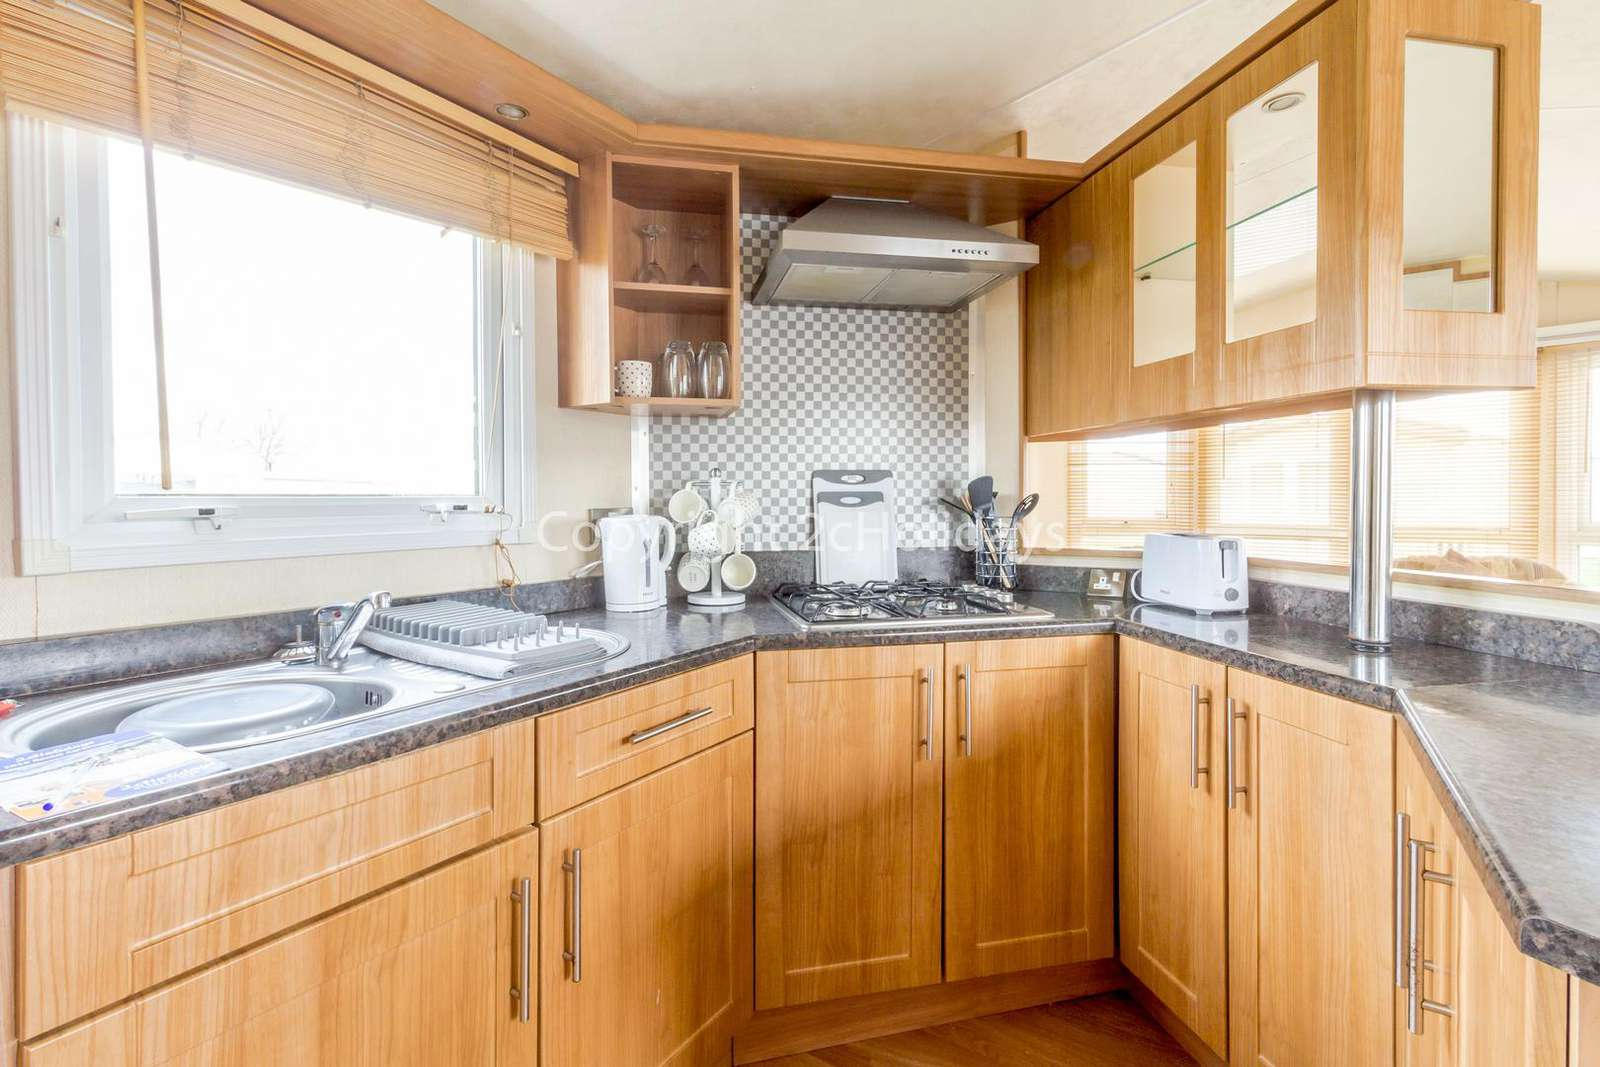 Fully equipped kitchen, ideal for self-catering holidays!